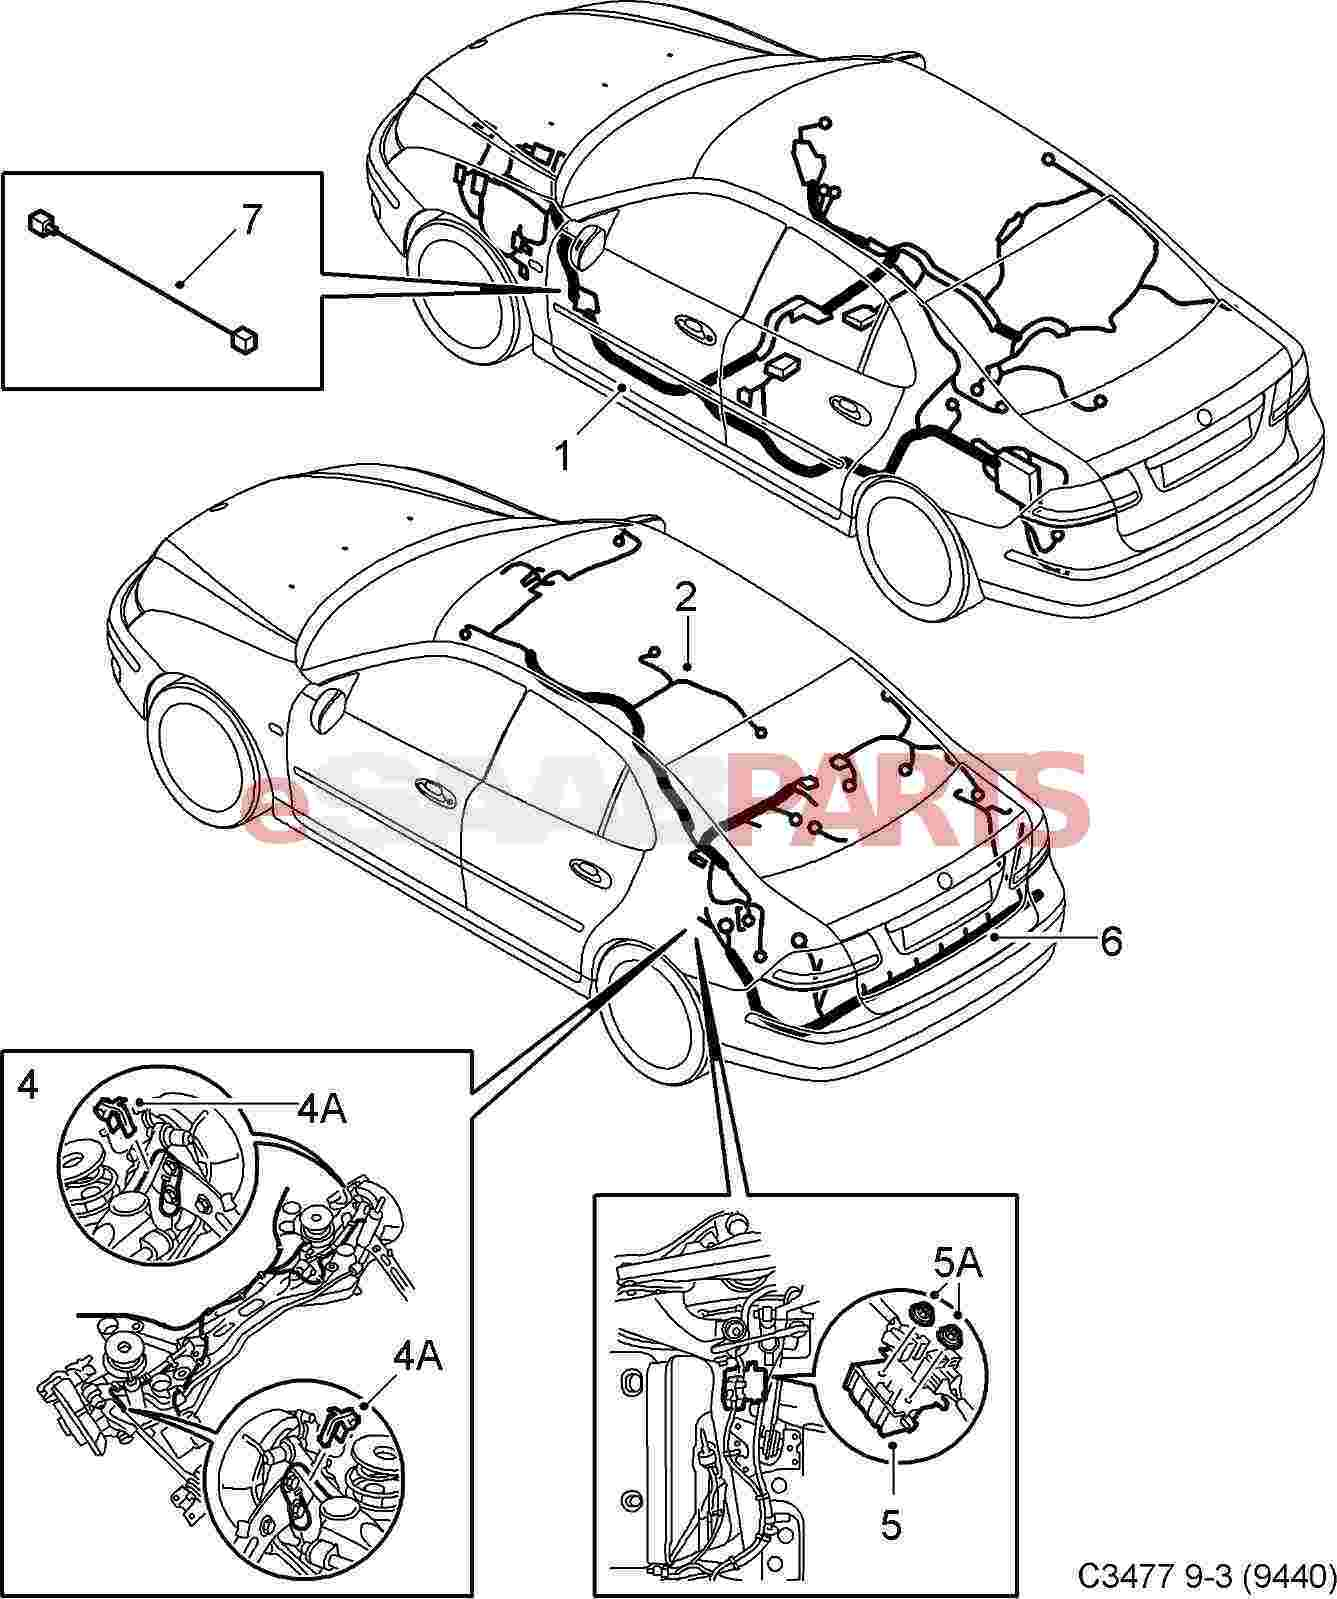 Harley Rear Speaker Wiring Harness. Diagrams. Wiring